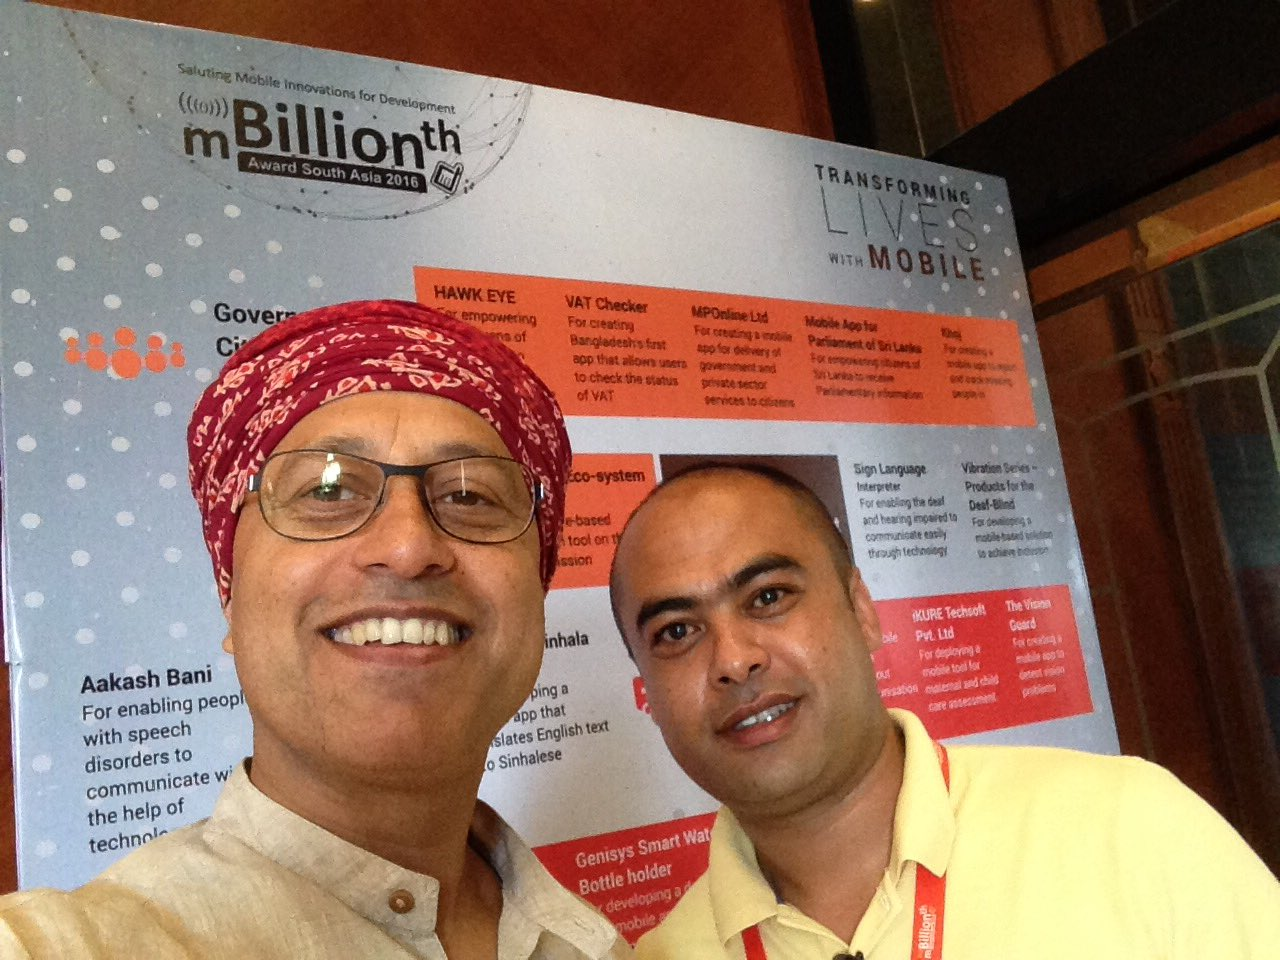 "FocusOne of Nepal says ""In Nepal V had 26 PMs in 18 yrs"" that motivates them to make apps & win at #mBillionth2016 https://t.co/rmrcEjaWyG"